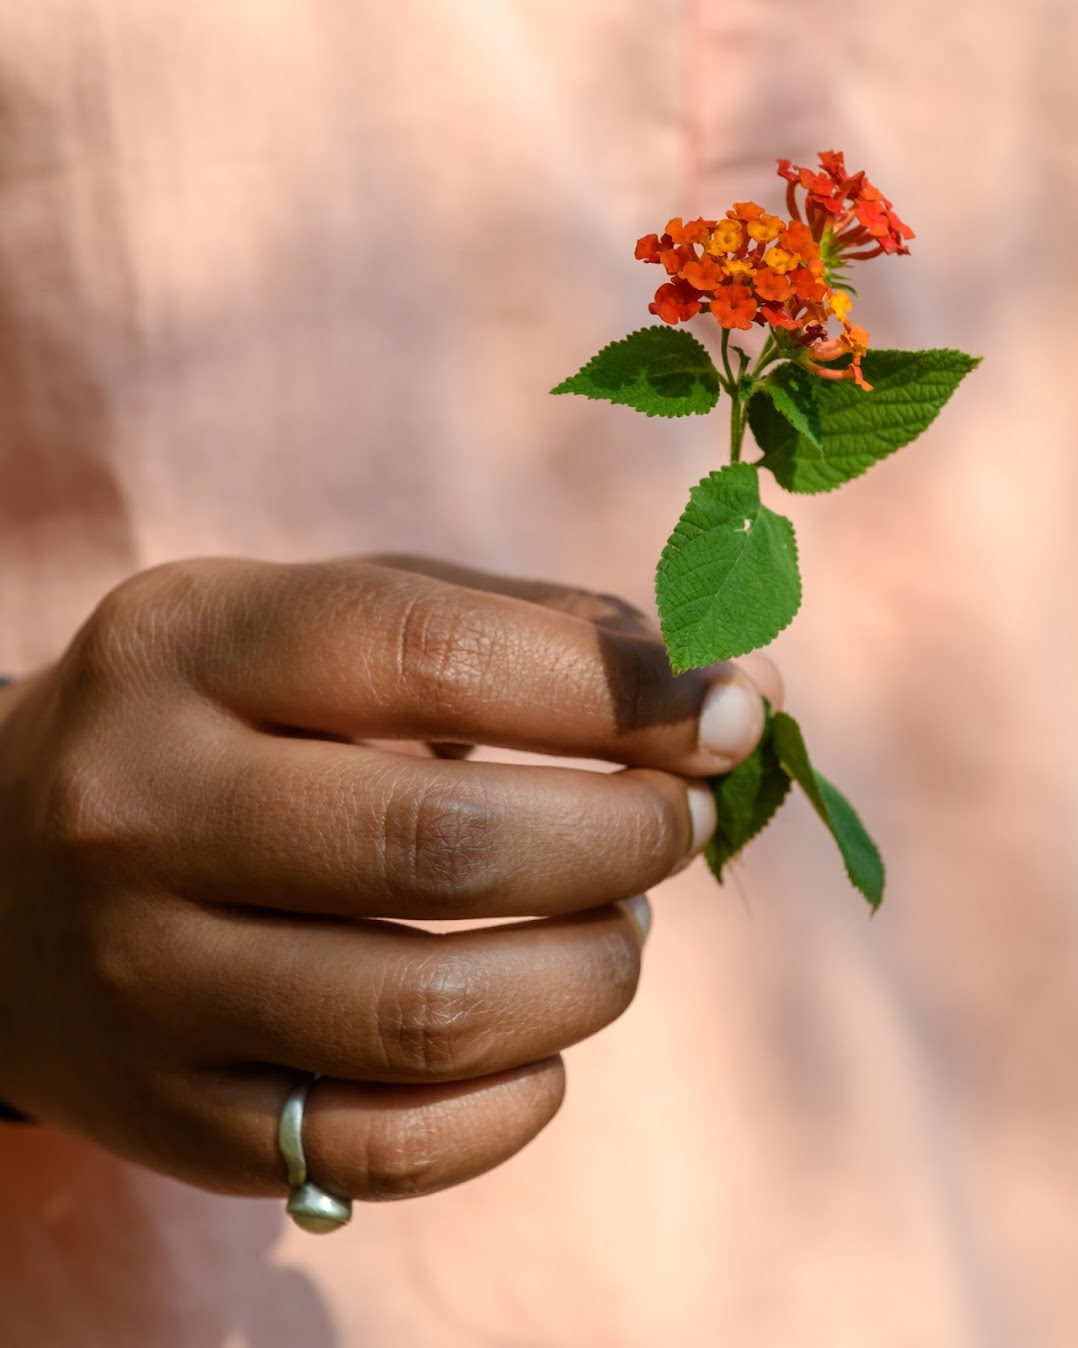 Originally from Central America, lantana out-competes many of India's native species.